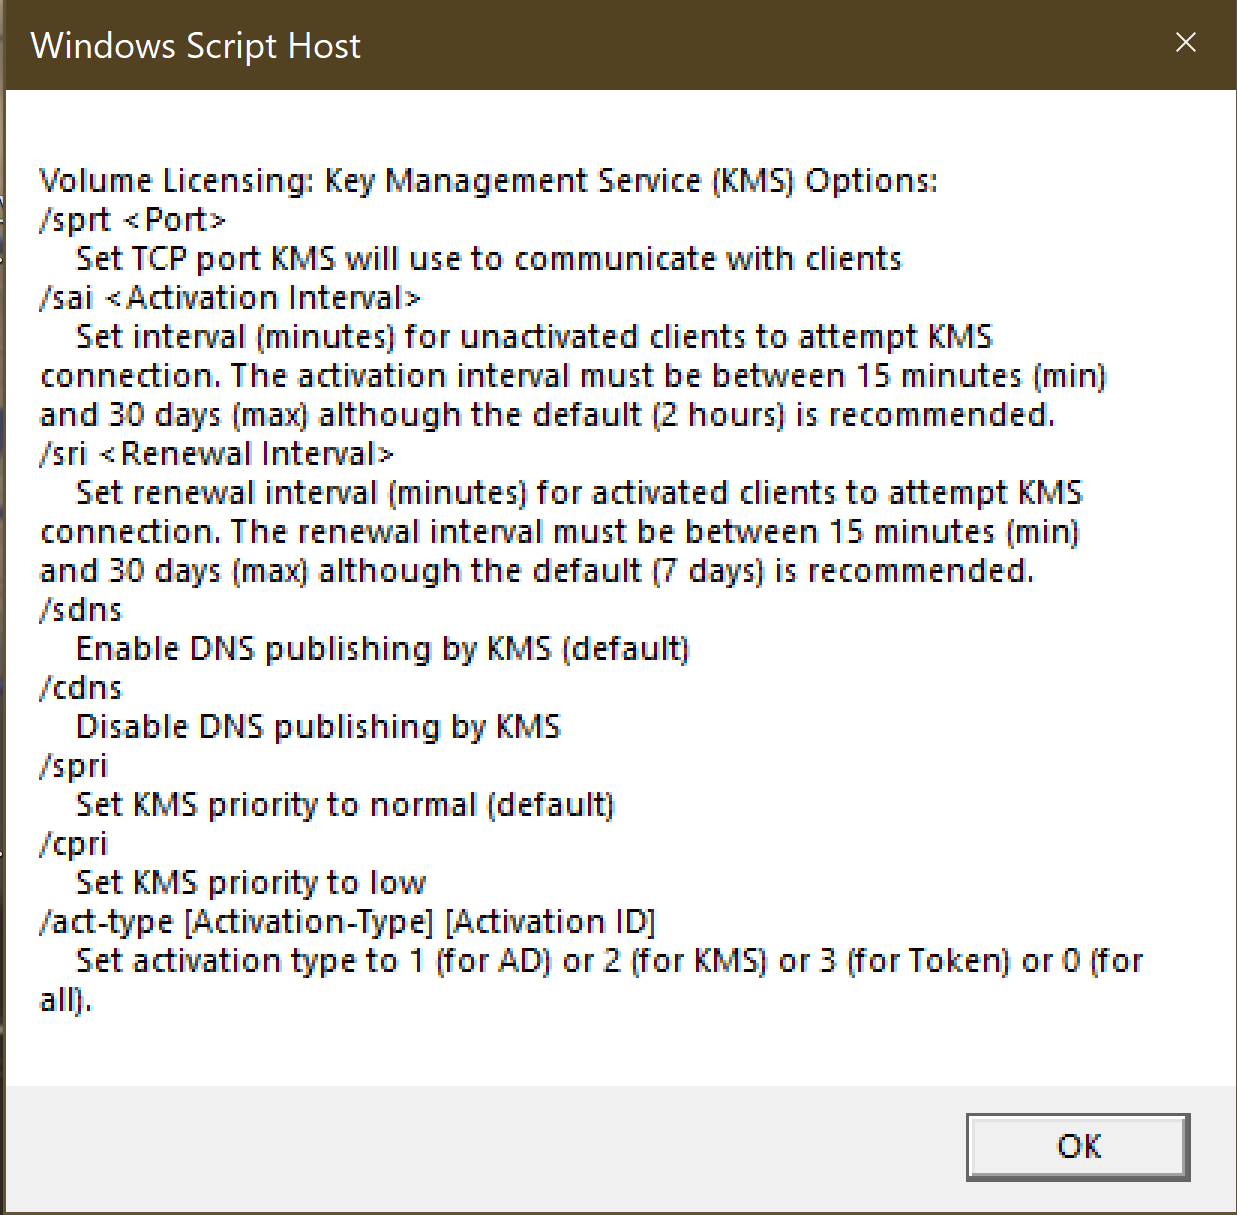 Windows Script Host pop up on startup ever since virus removal and reinstall of windows 10 pro 12a7bc42-53fe-4b1e-afba-ef6ee26ca1c1?upload=true.png